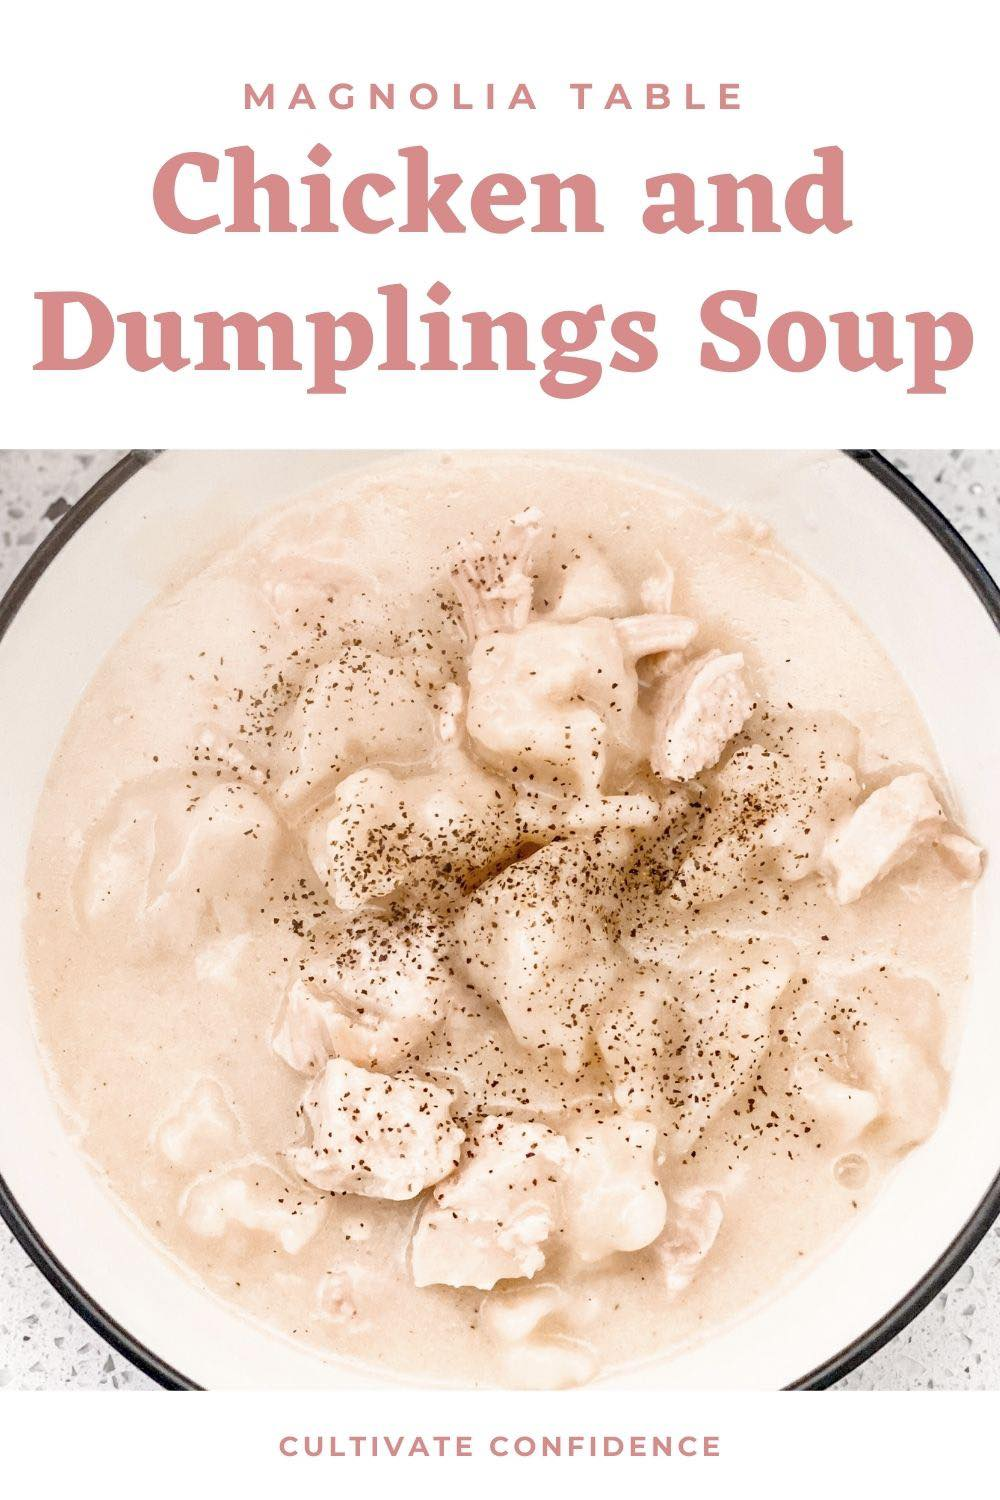 How to Make the Easiest Chicken and Dumplings Soup